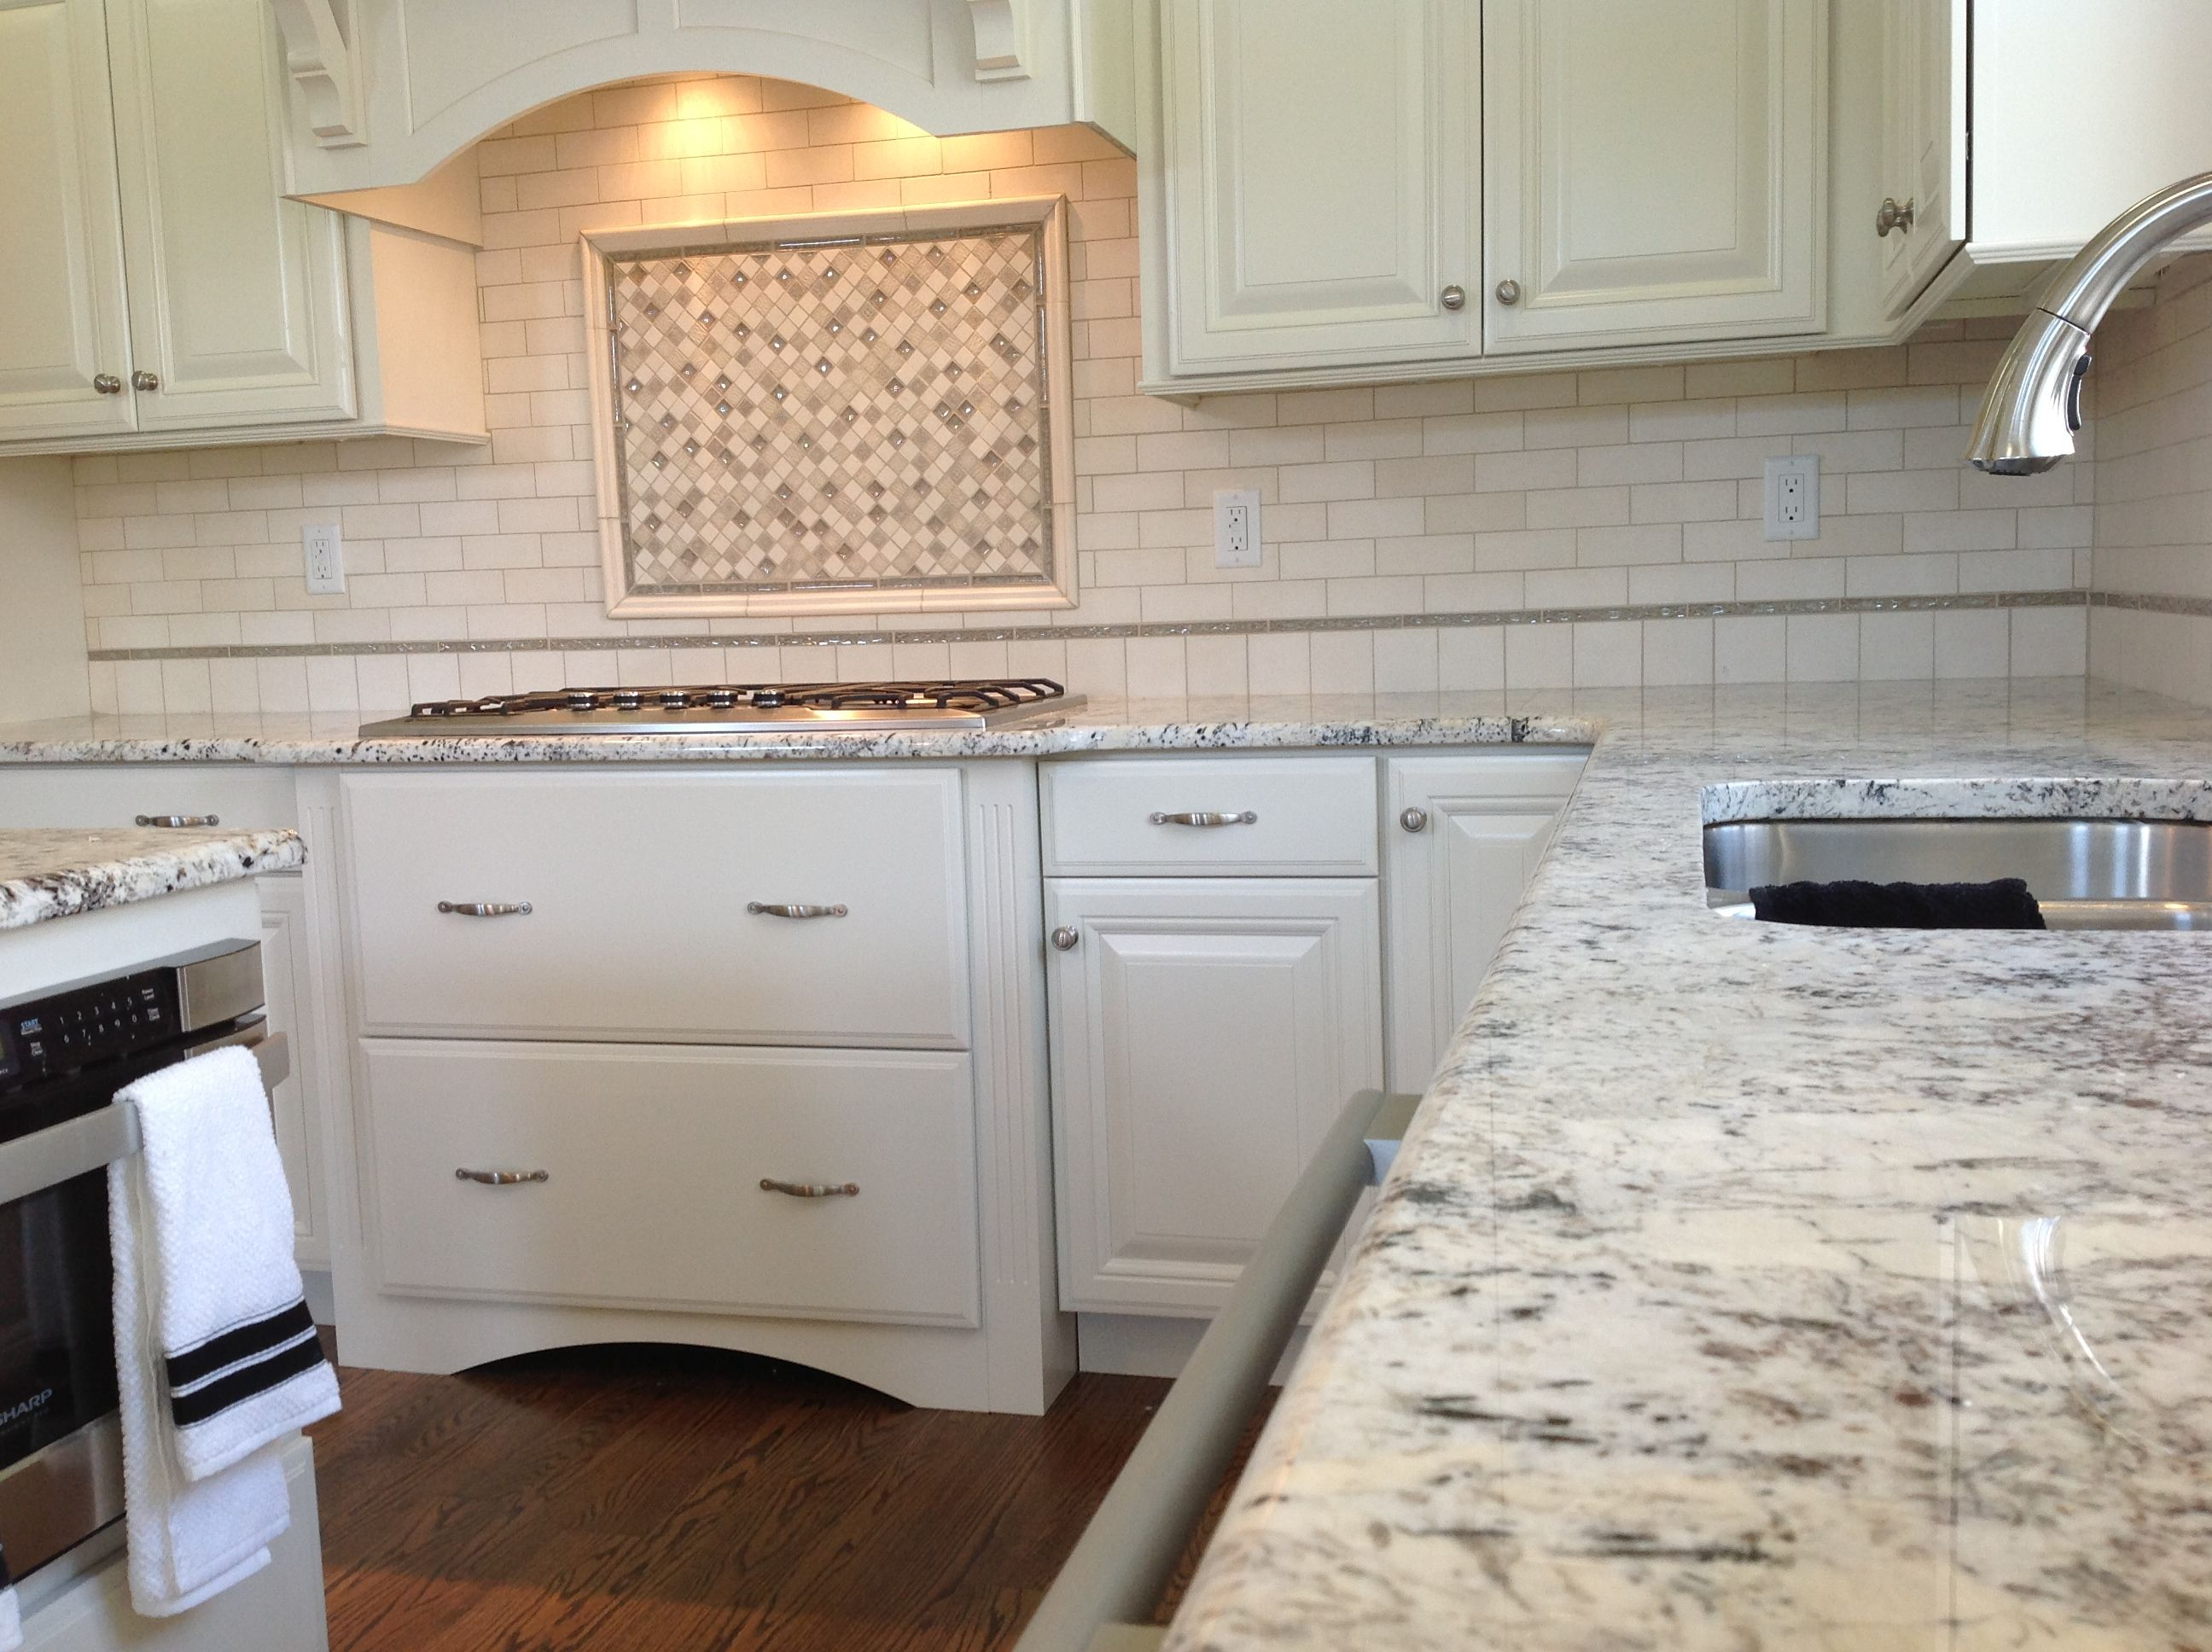 Tantrum Glass Backsplash Subway Backsplash With Framed Highlight Over Cook Stove